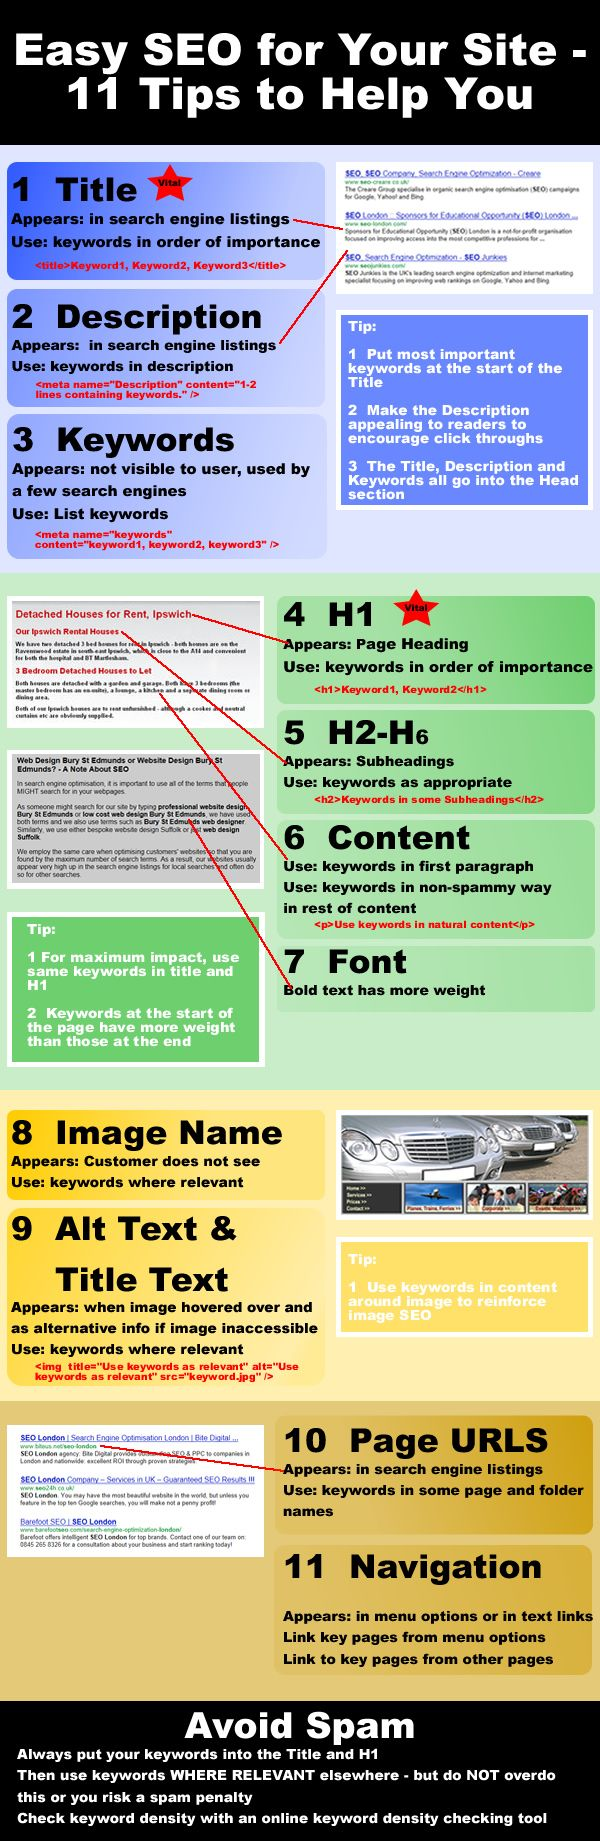 What Are 21 #SEO and Design Tips To Make Your Website Work For You? #infographic